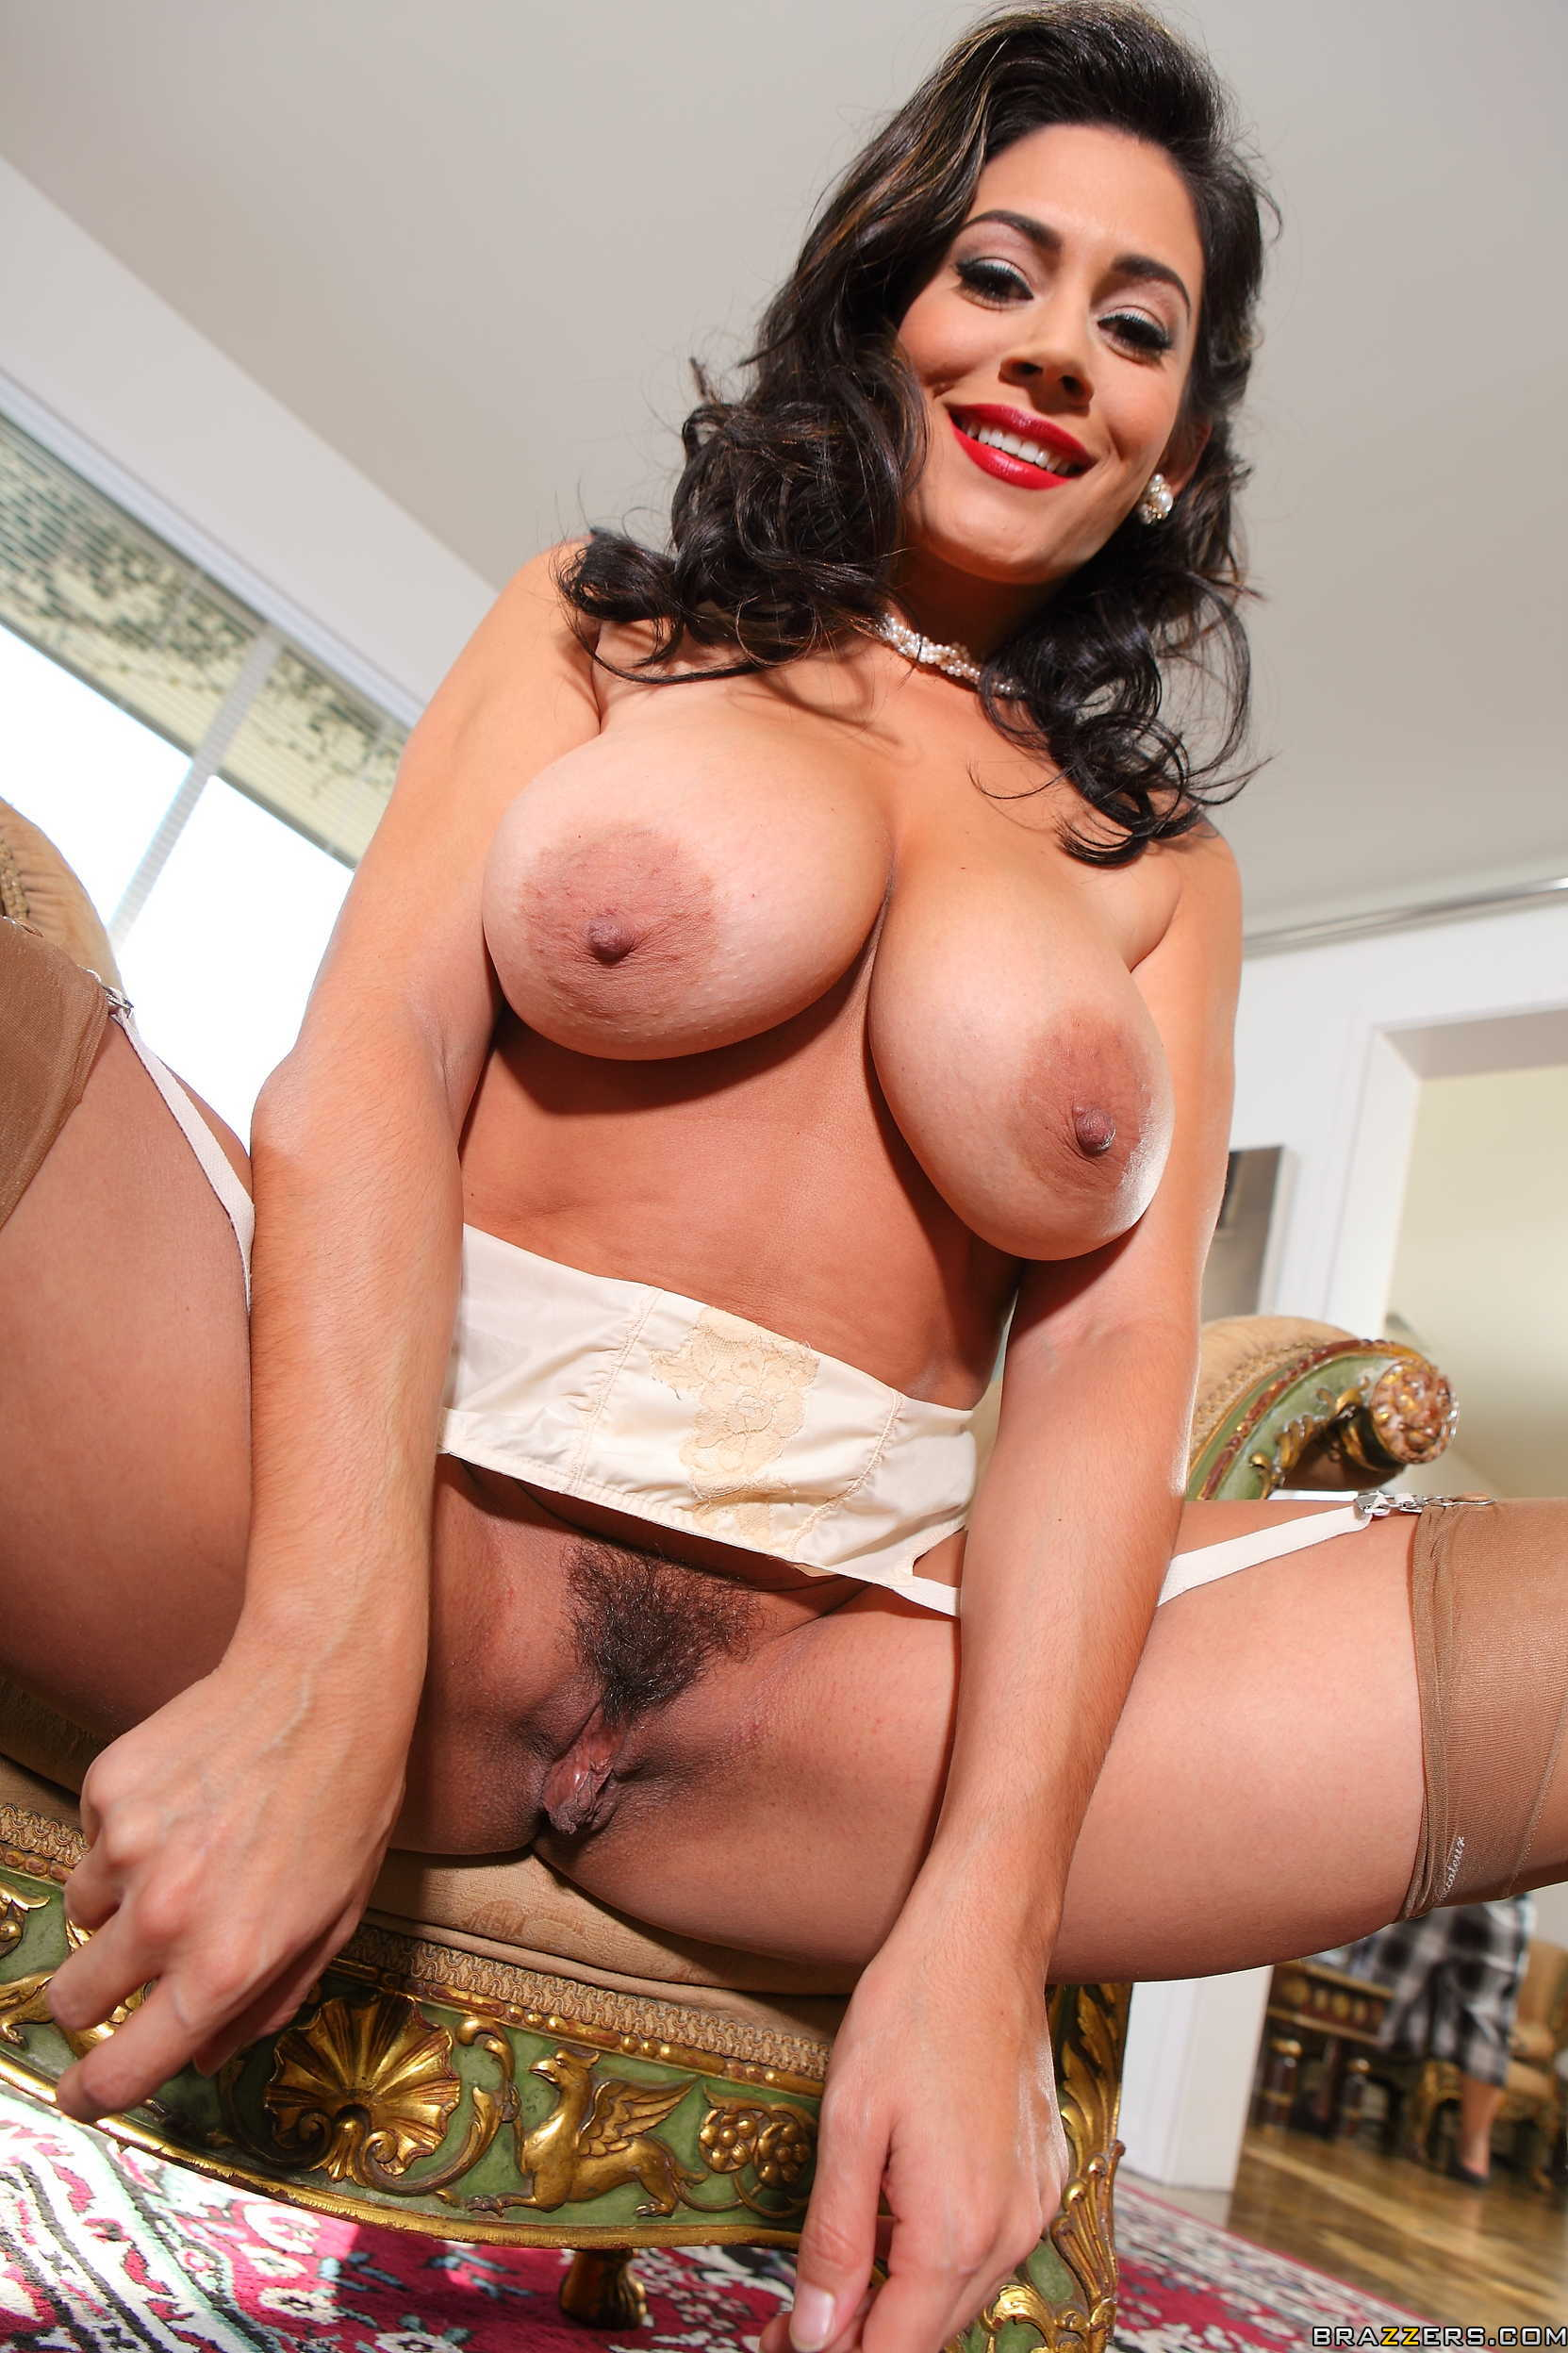 Raylene the milf makes you jerk off 4